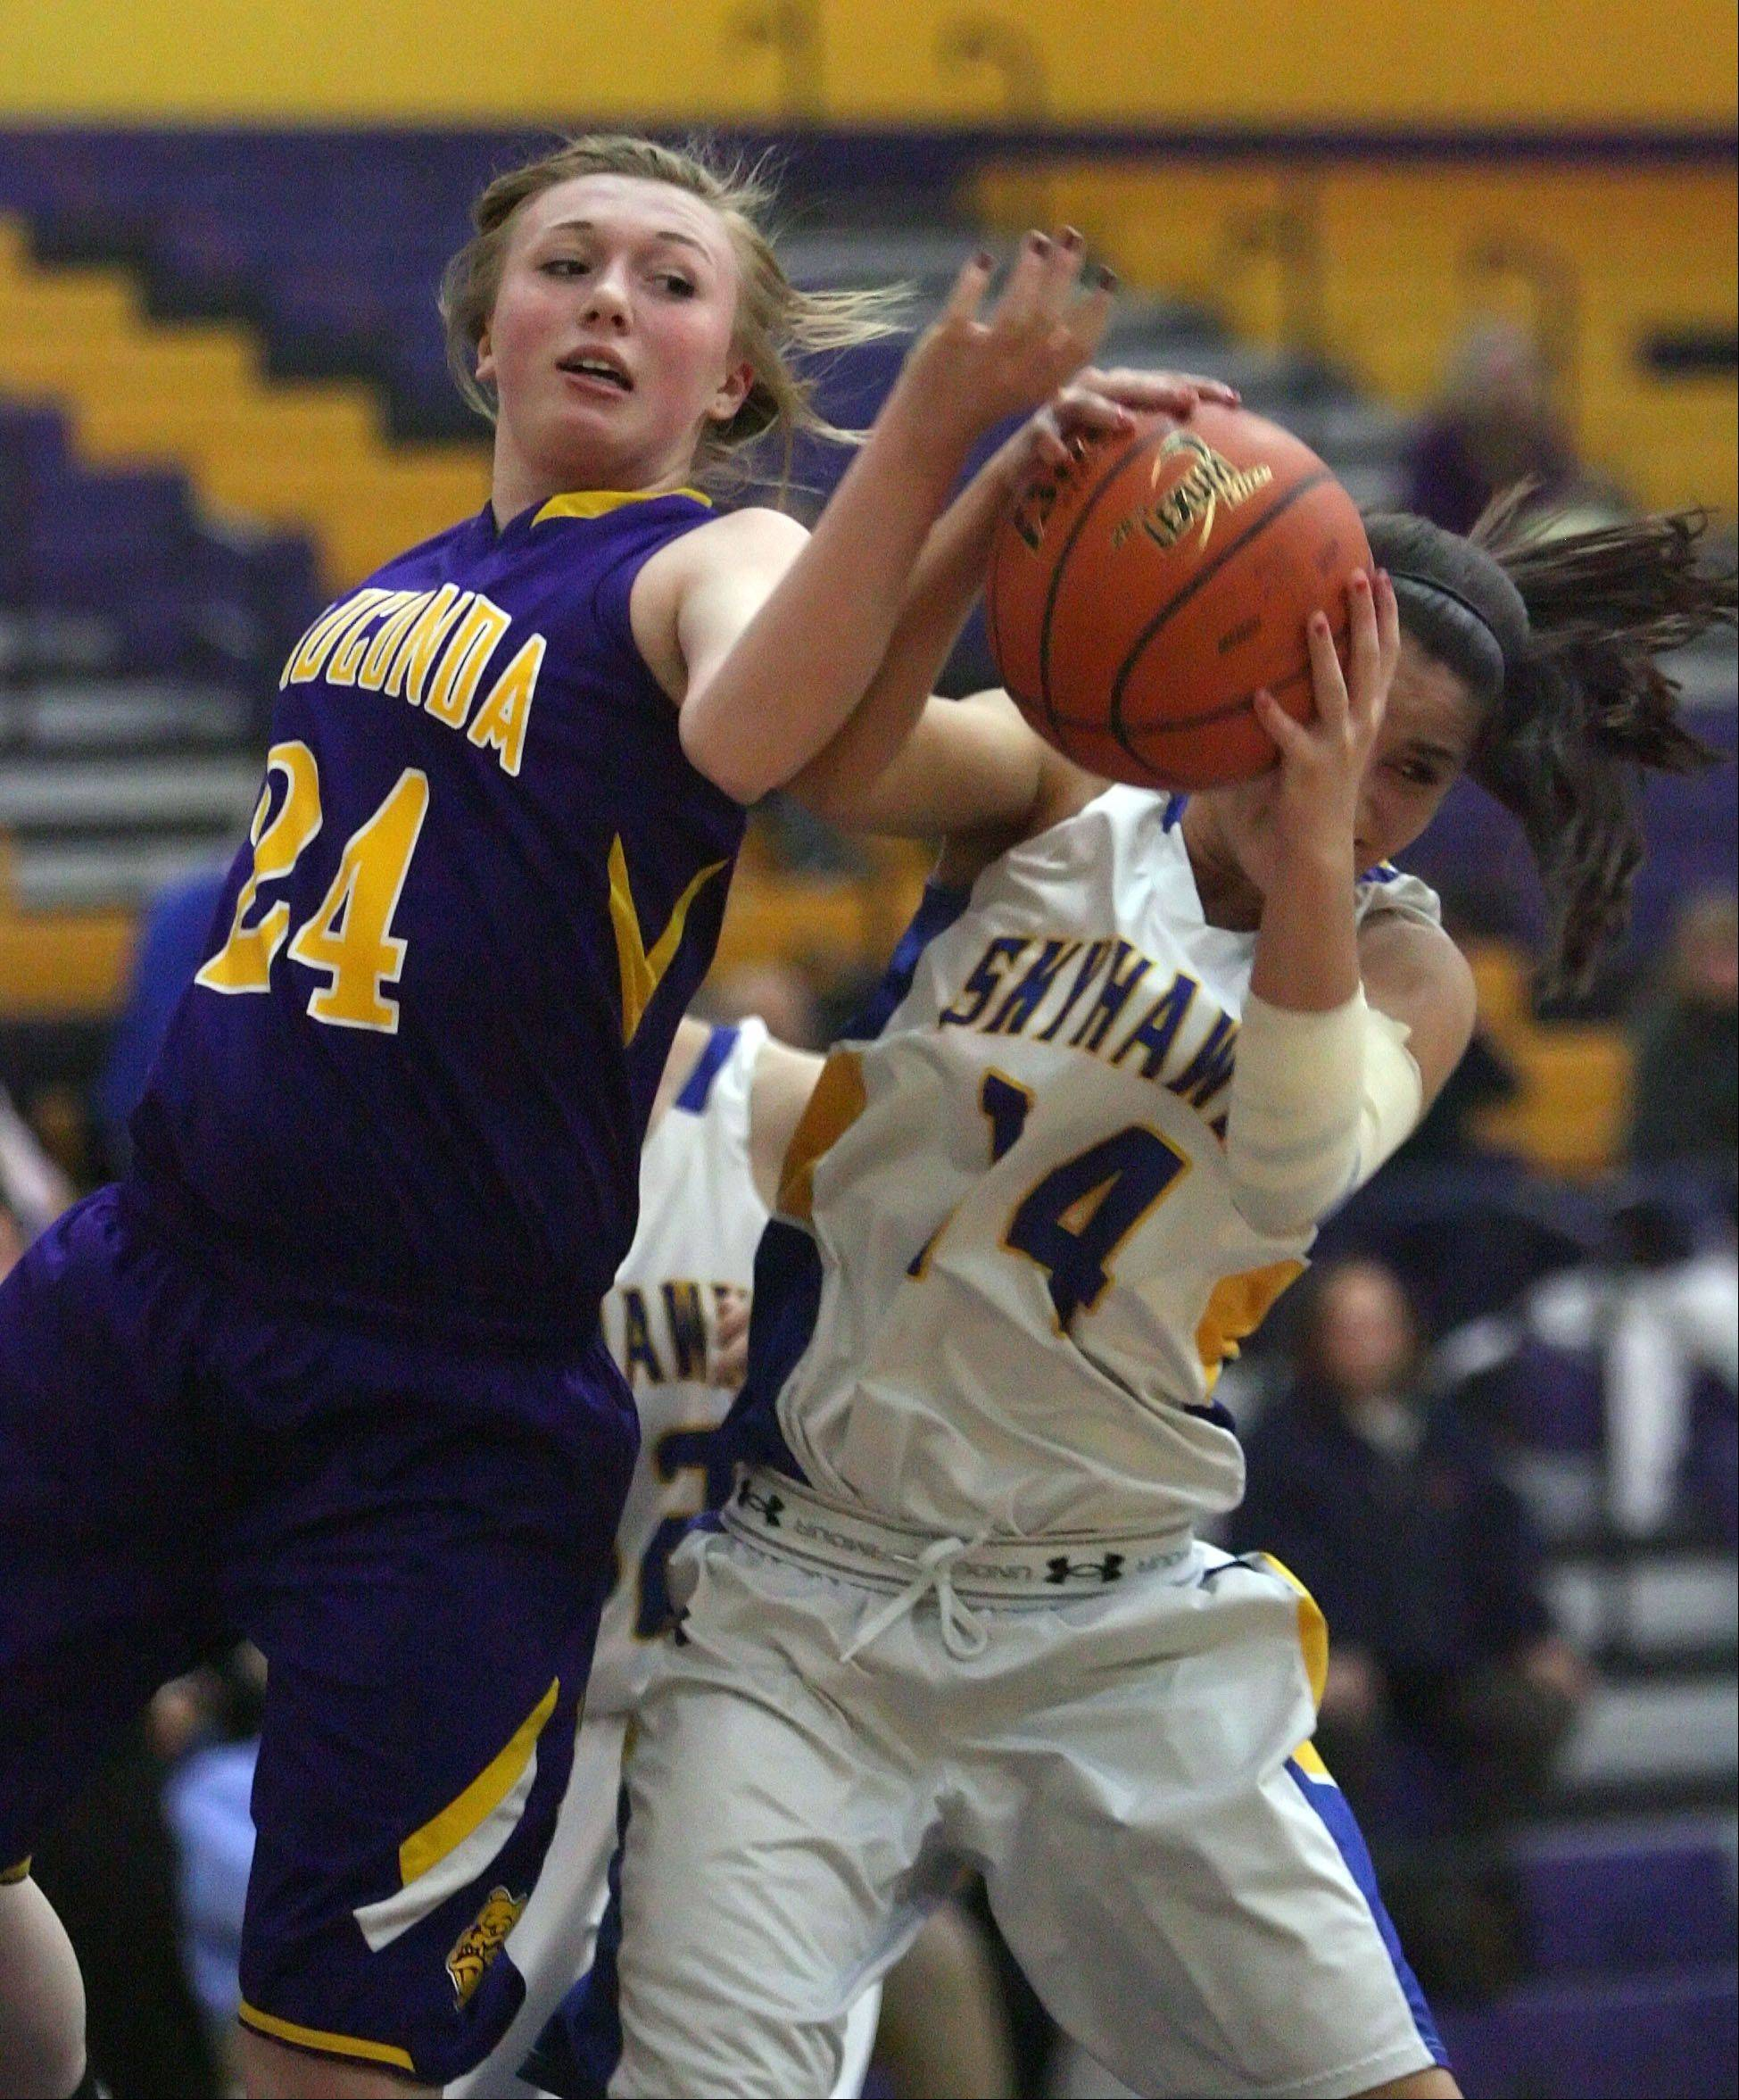 Wauconda's Melissa Latham, left, and Johnsburg's Tayelor Neiss battle for a rebound during Wednesday night's basketball game in Wauconda.